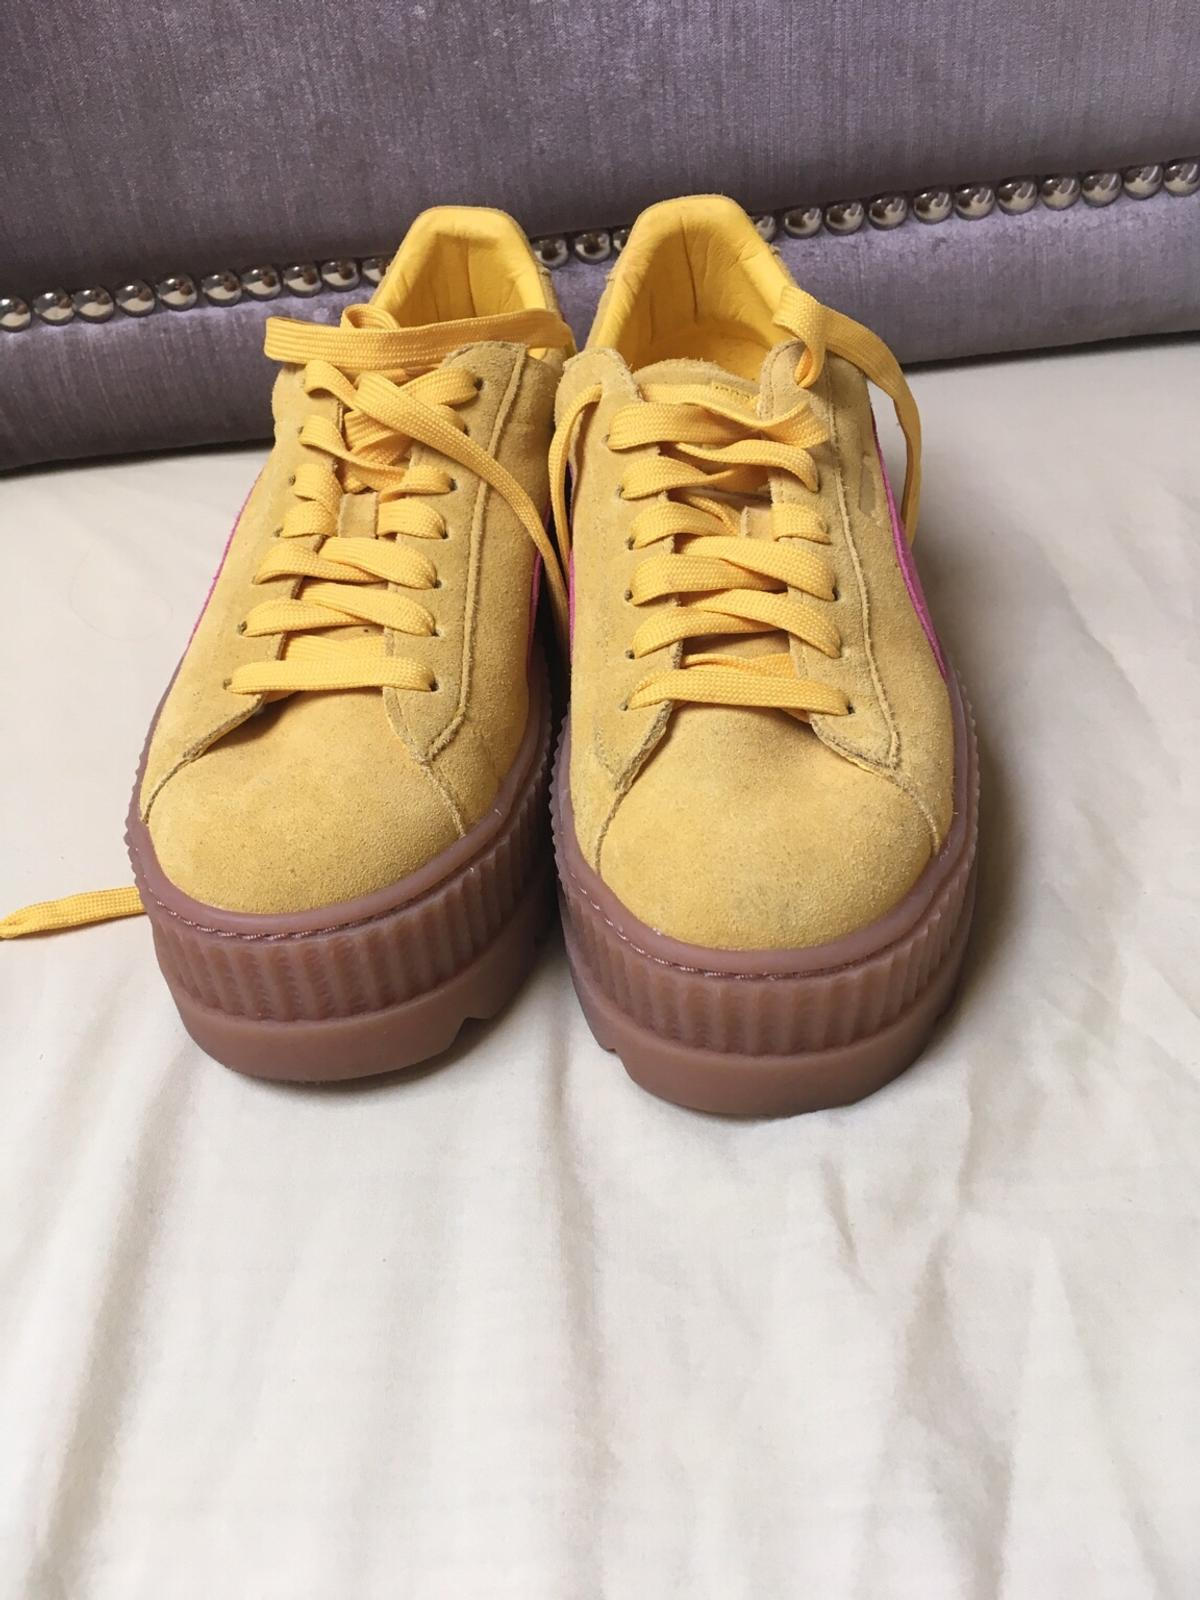 huge selection of 2cf42 4ad3a Rihanna Fenty puma creepers